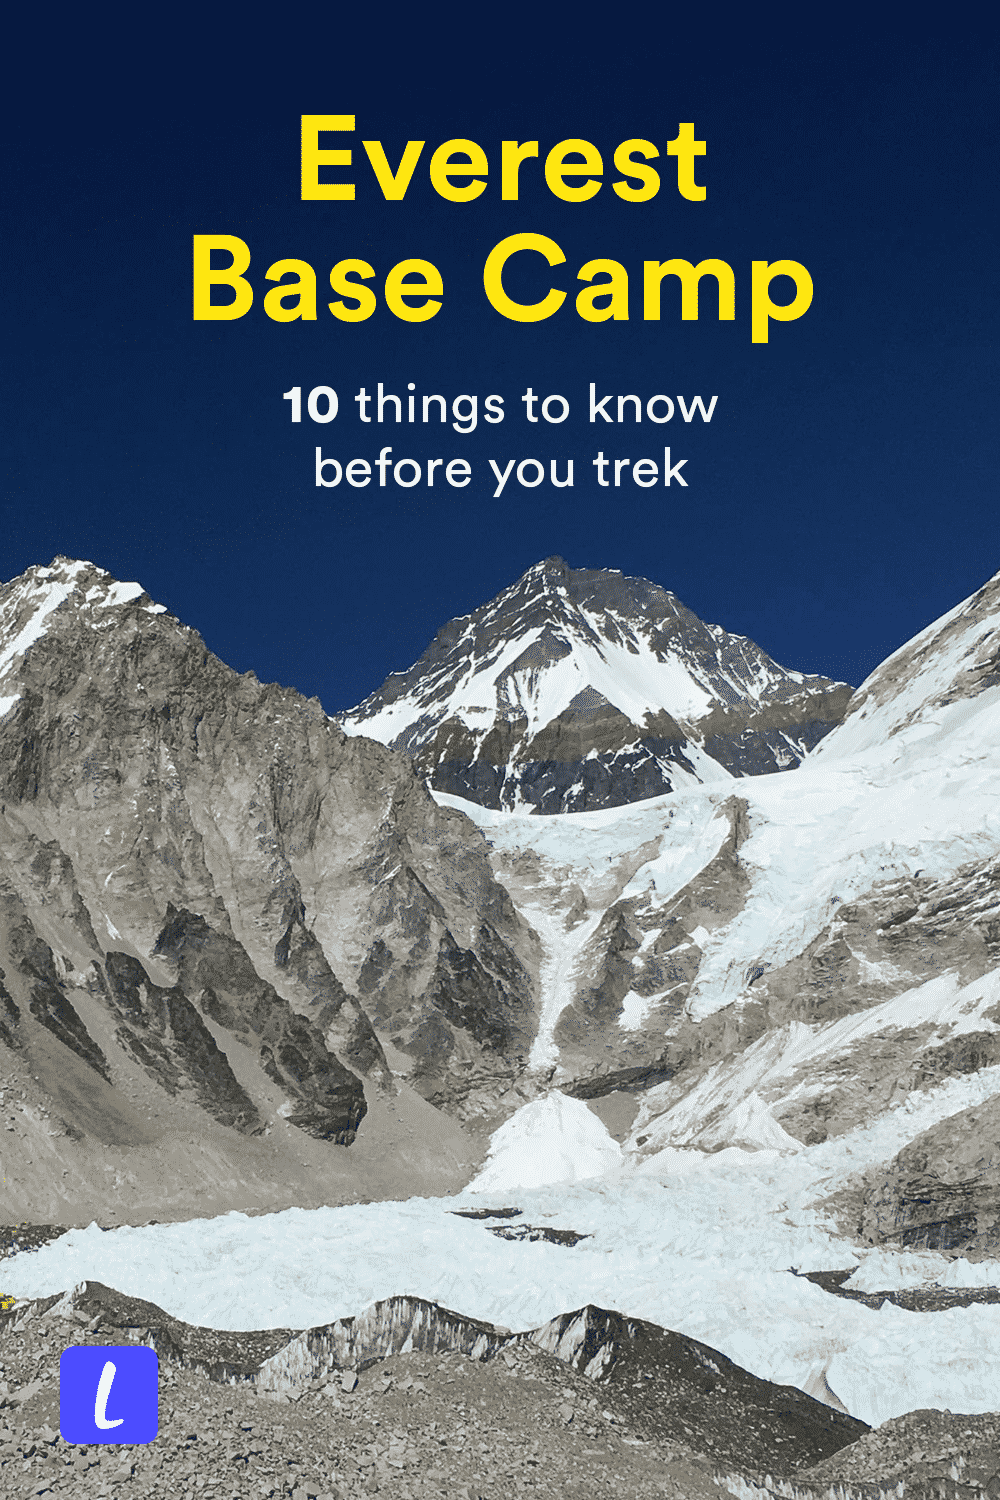 Want to trek to the Everest Base Camp in Nepal? Here's what you need to know before you hike the EBC, including safety tips, how to hire a guide for the EBC, what to pack before traveling to Nepal, and more.